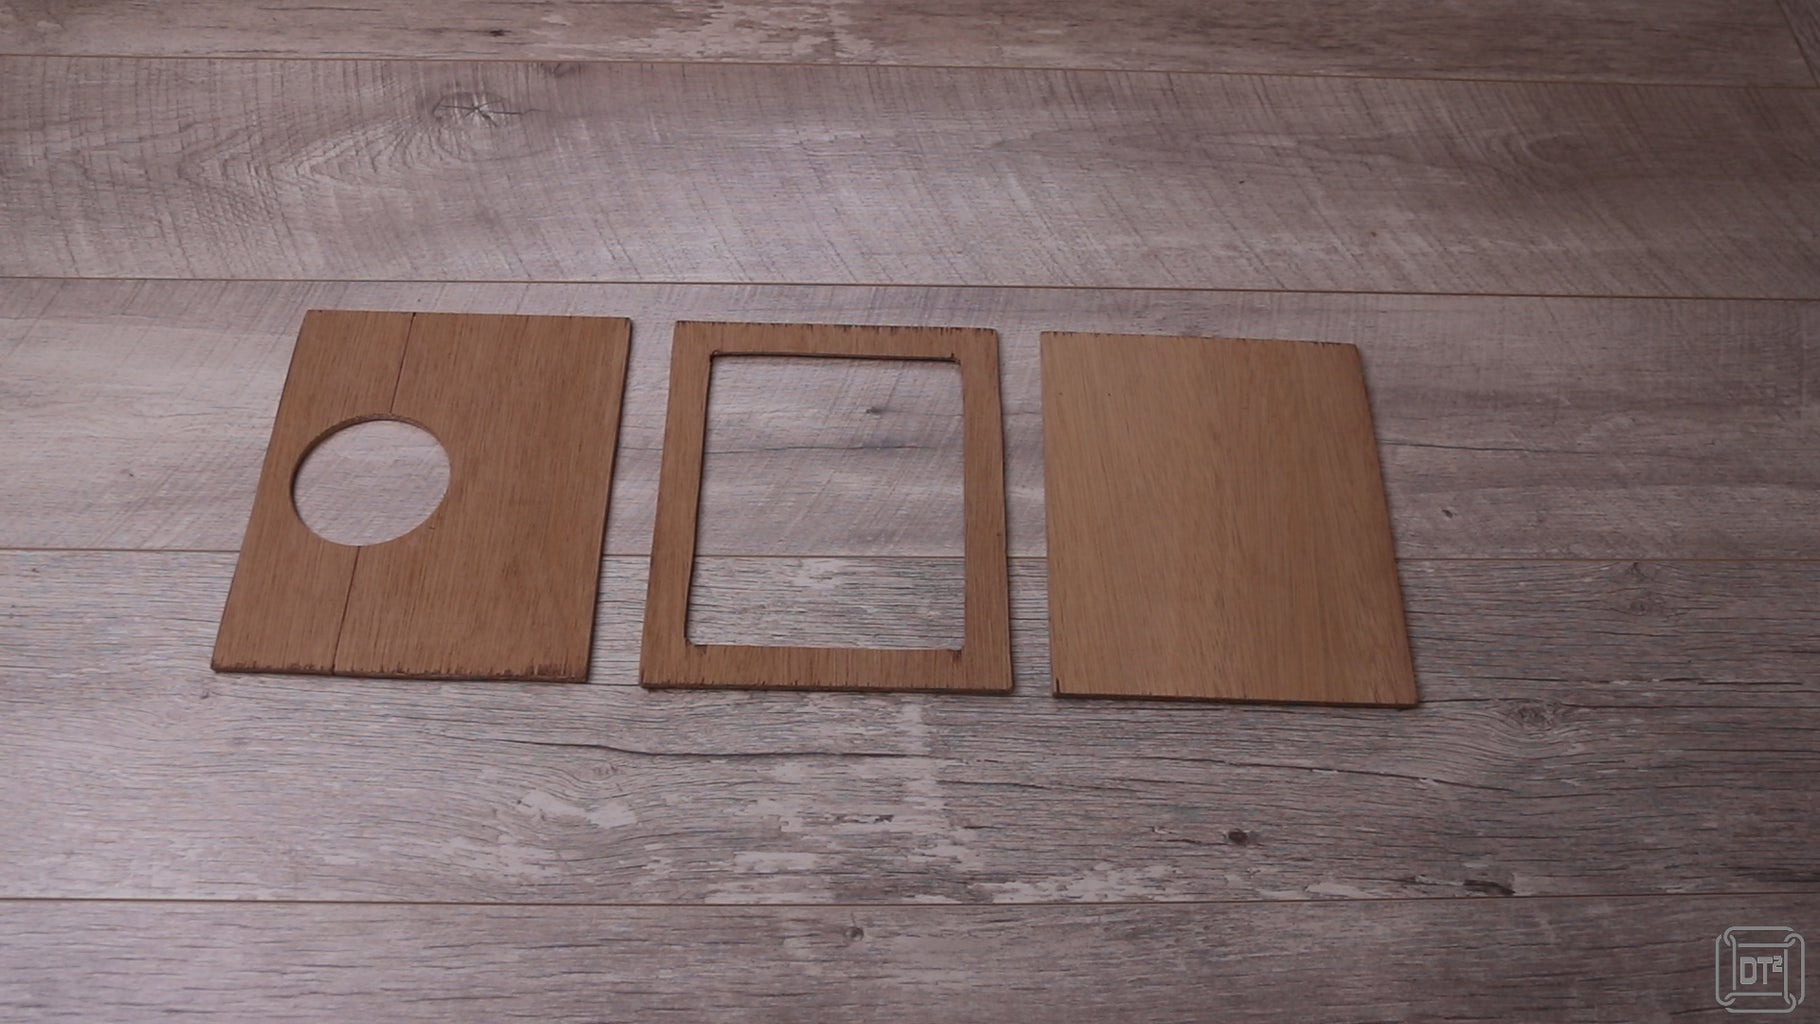 Cut and Paint Materials - Wood Panels